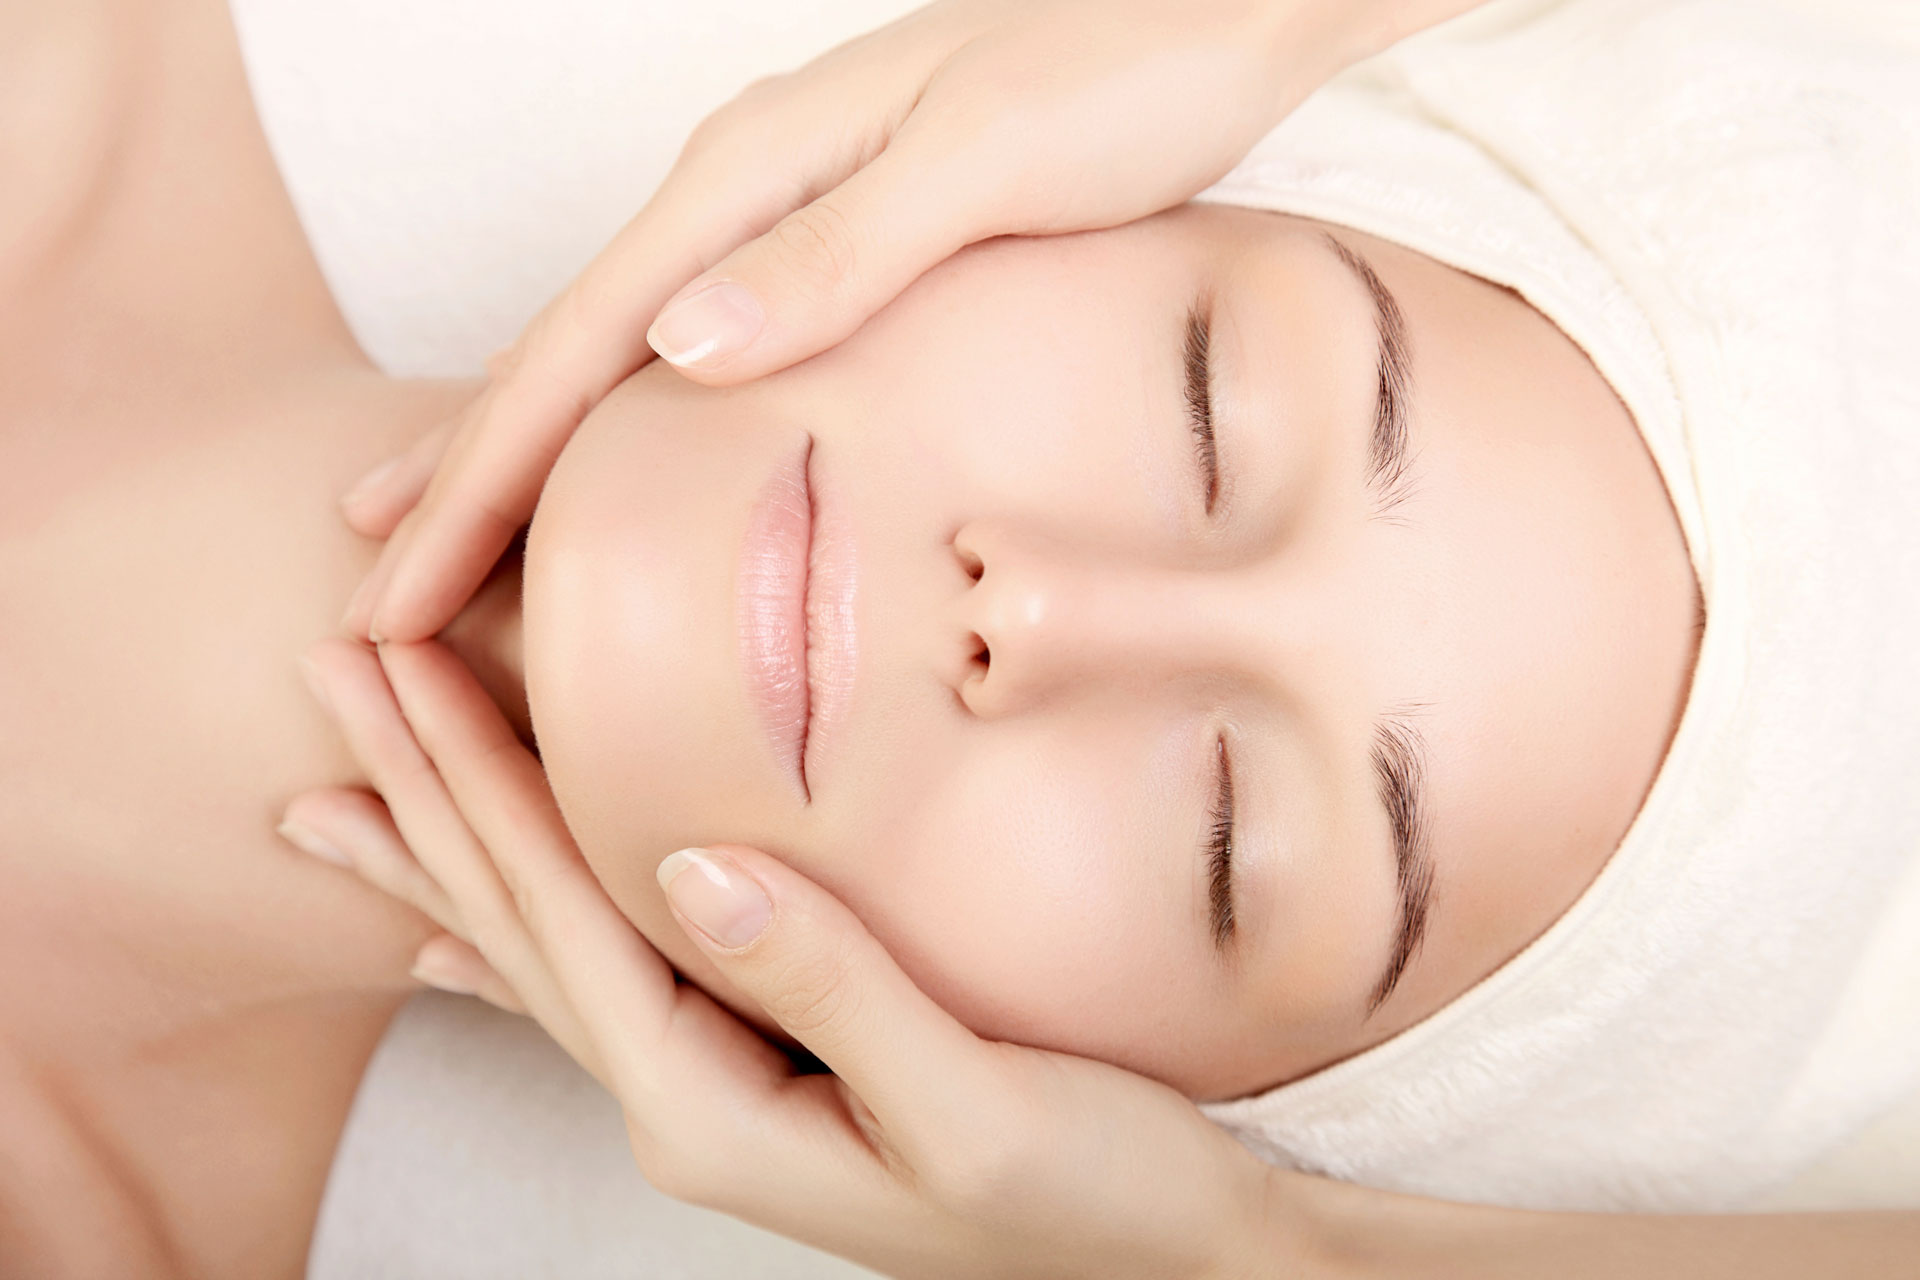 Stuff to use for facial massages